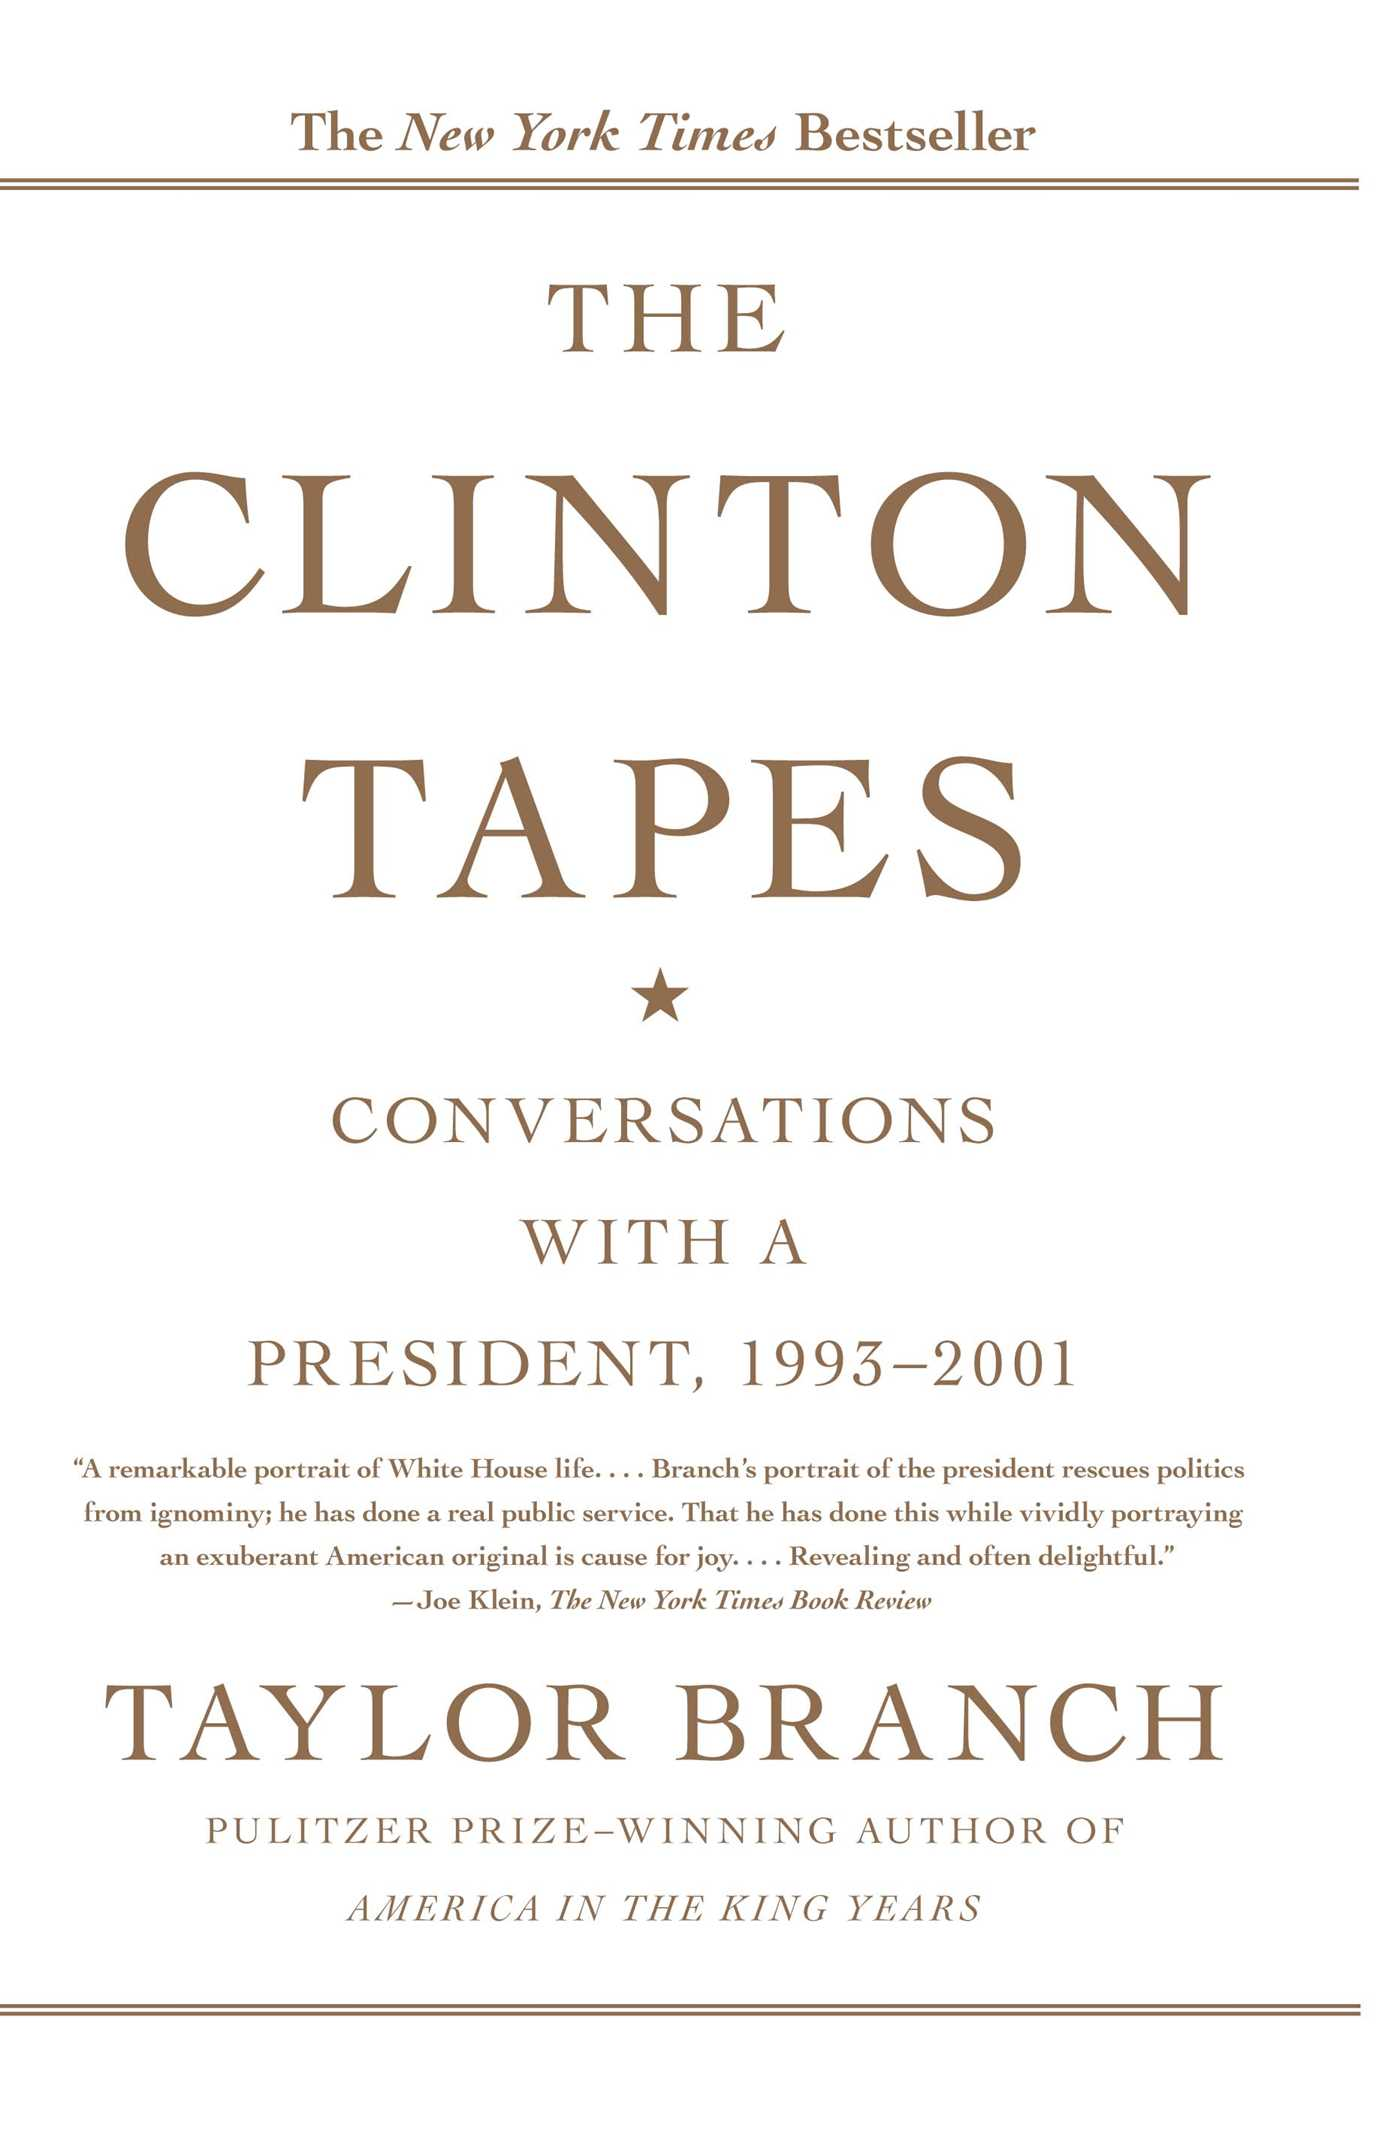 Clinton tapes 9781416594345 hr